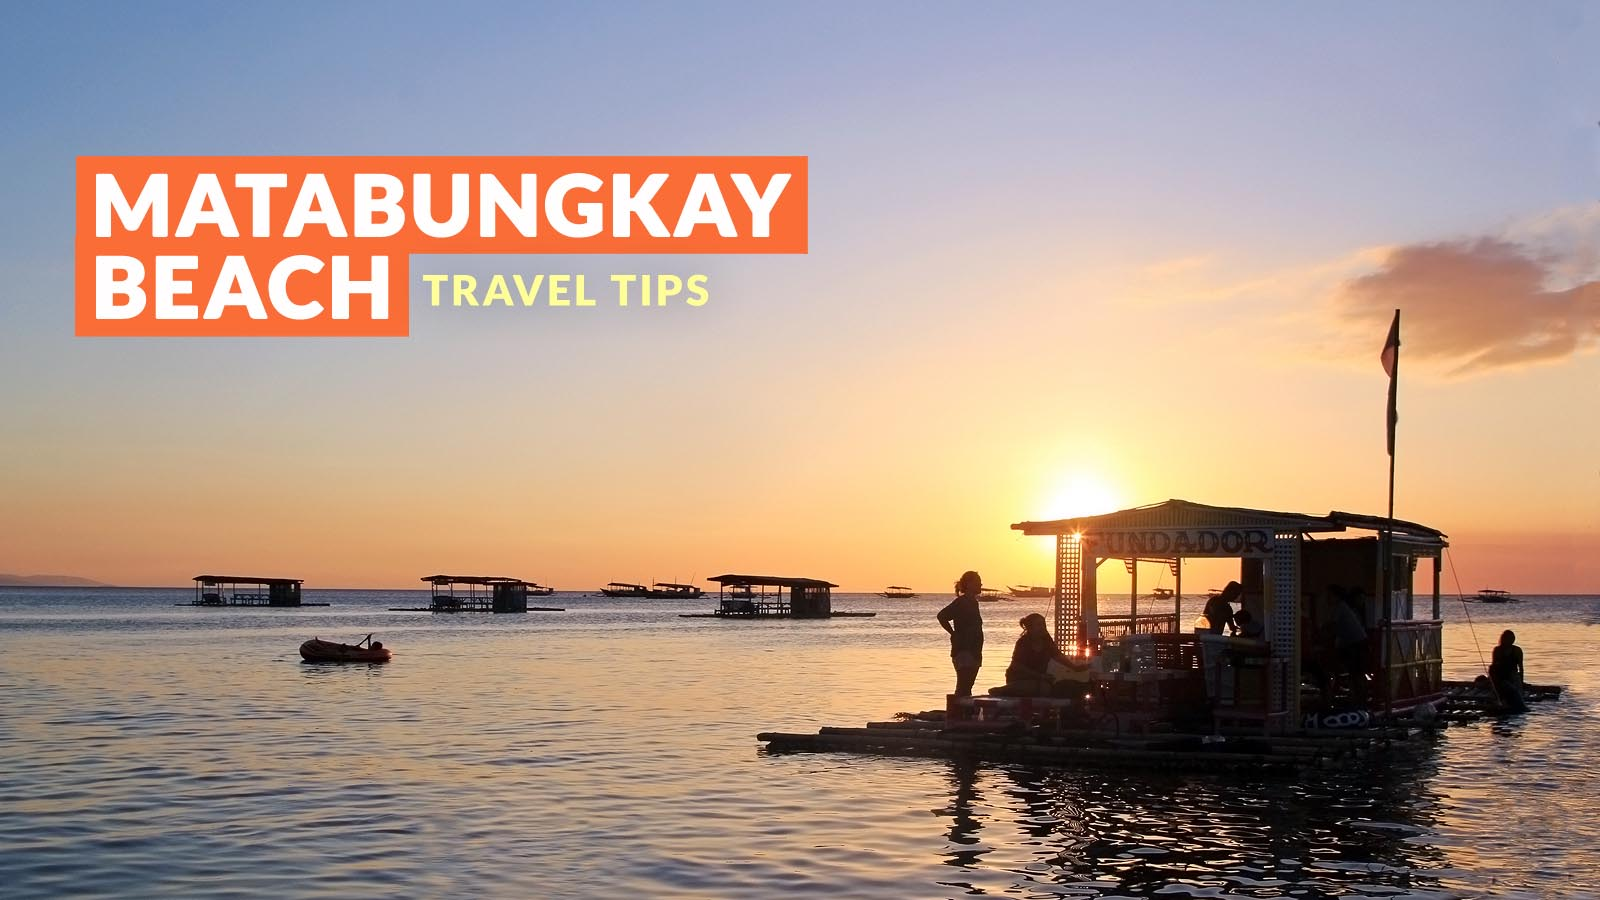 MATABUNGKAY BEACH, BATANGAS: IMPORTANT TRAVEL TIPS